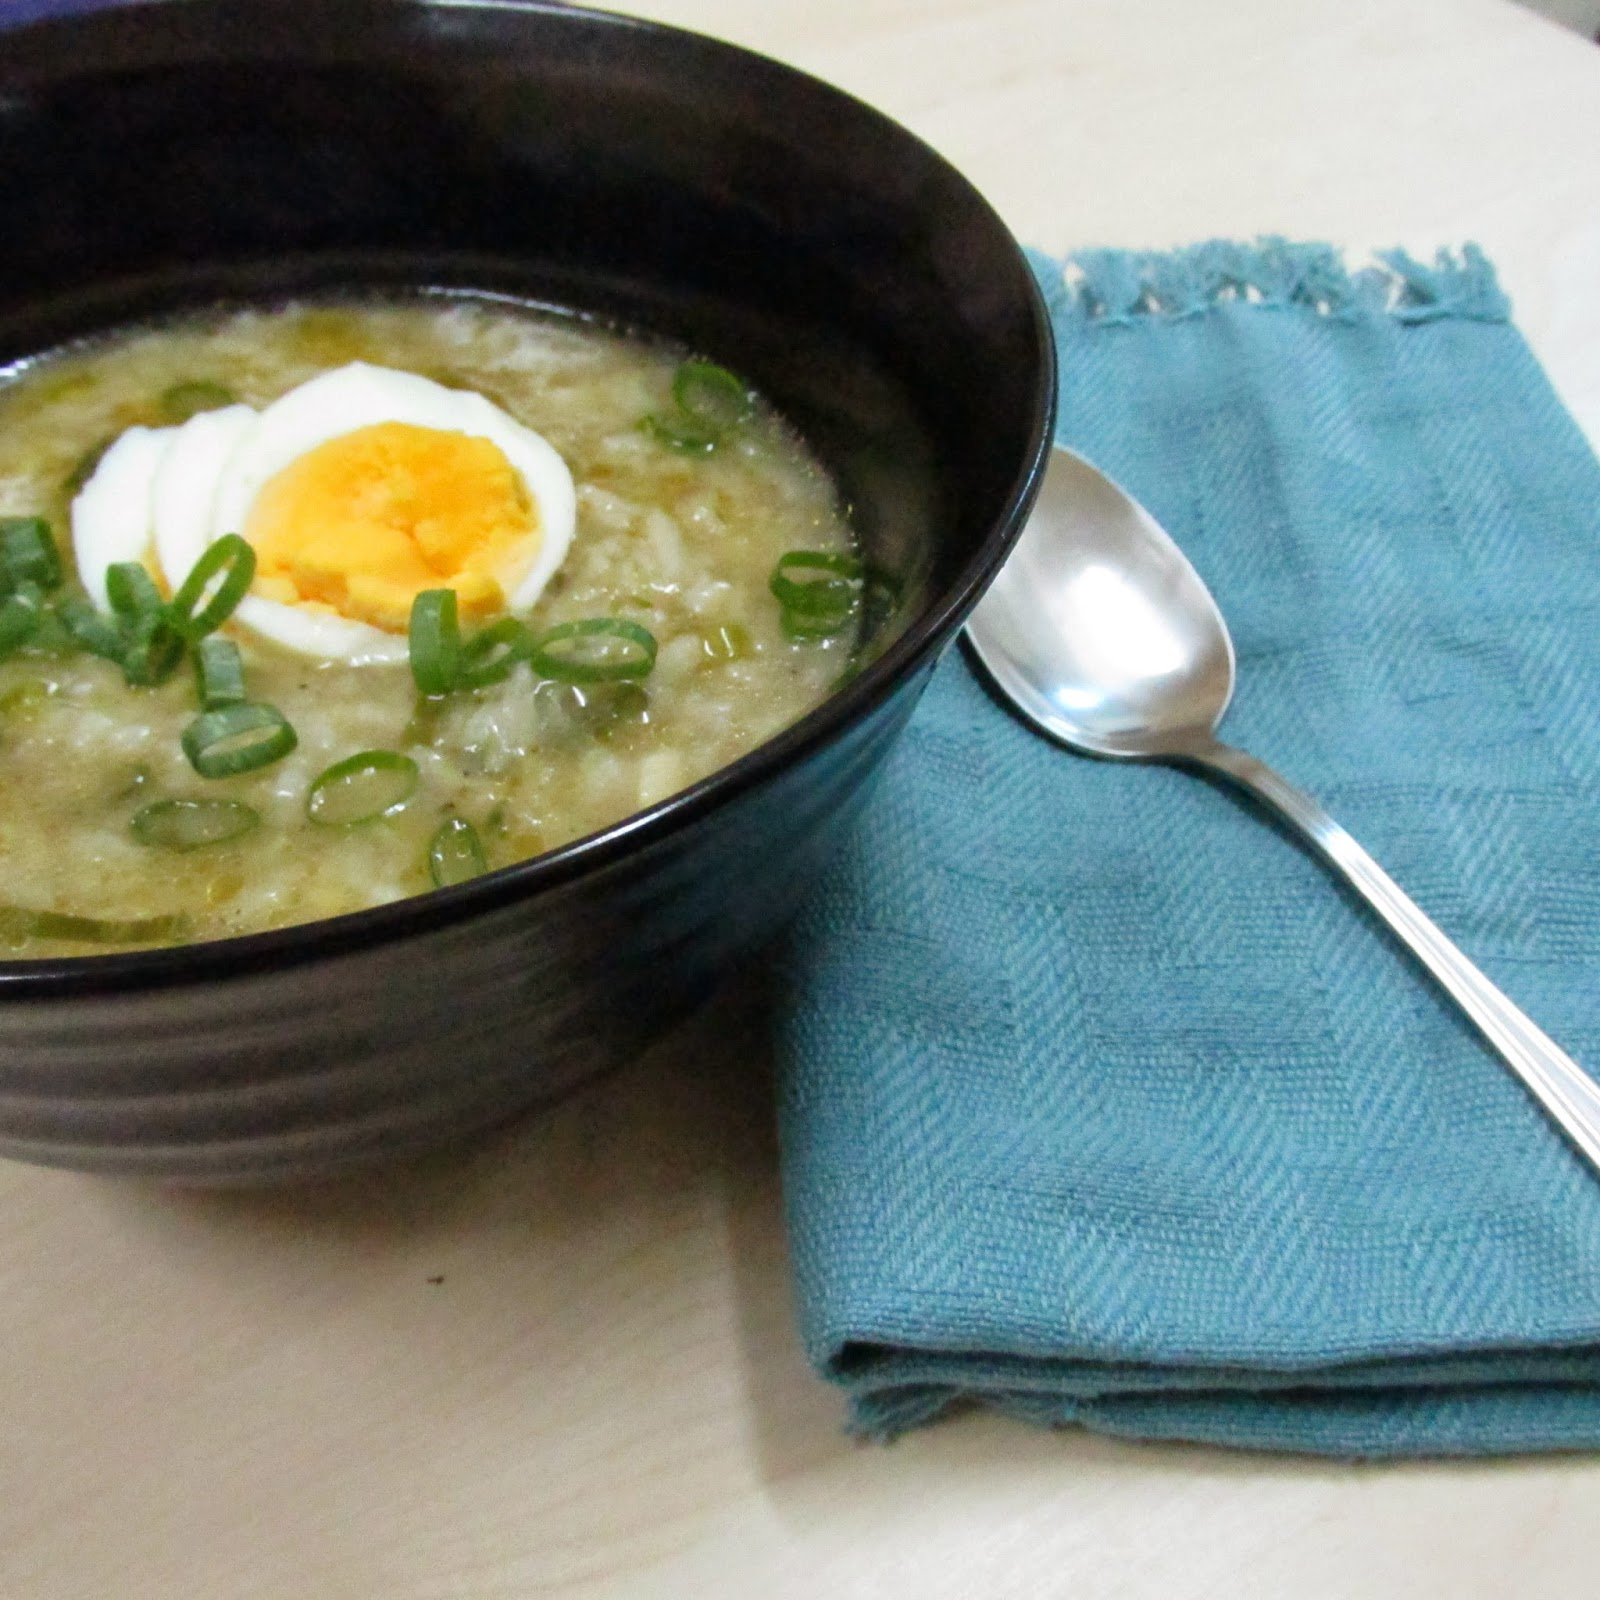 Darlene cooked this: Arroz Caldo